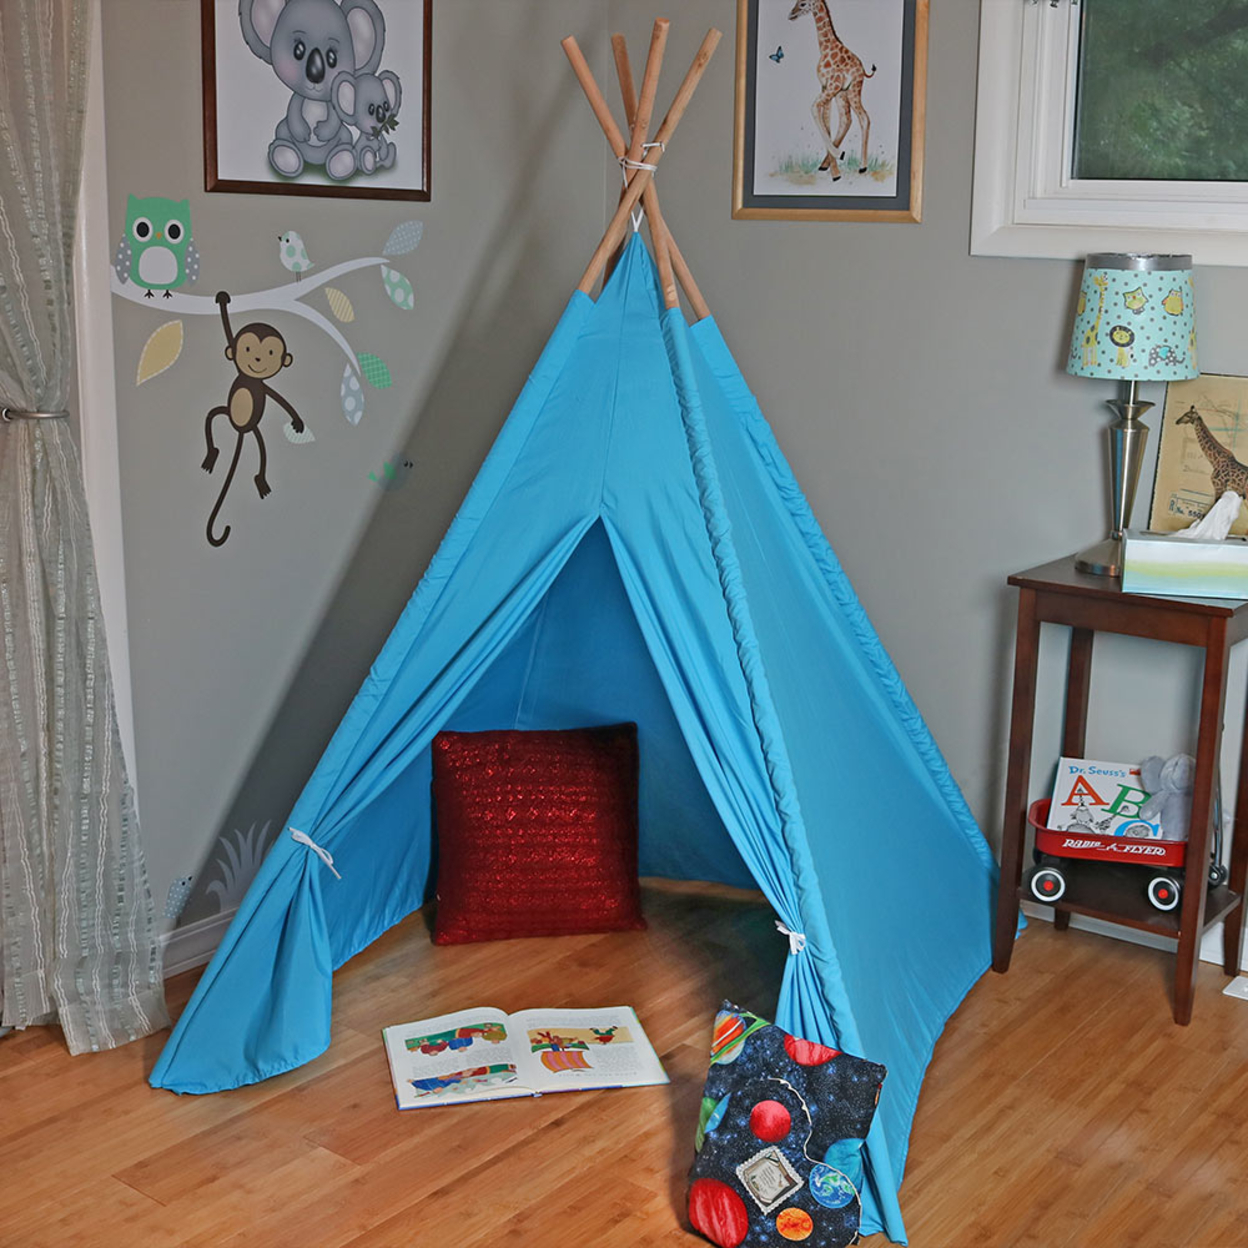 Sunnydaze Large Polyester Kids? Teepee Play Tent with Carrying Case, 4-Pole Style, 5-Foot Tall, Multiple Colors 5939560e2a00e426243eef5c